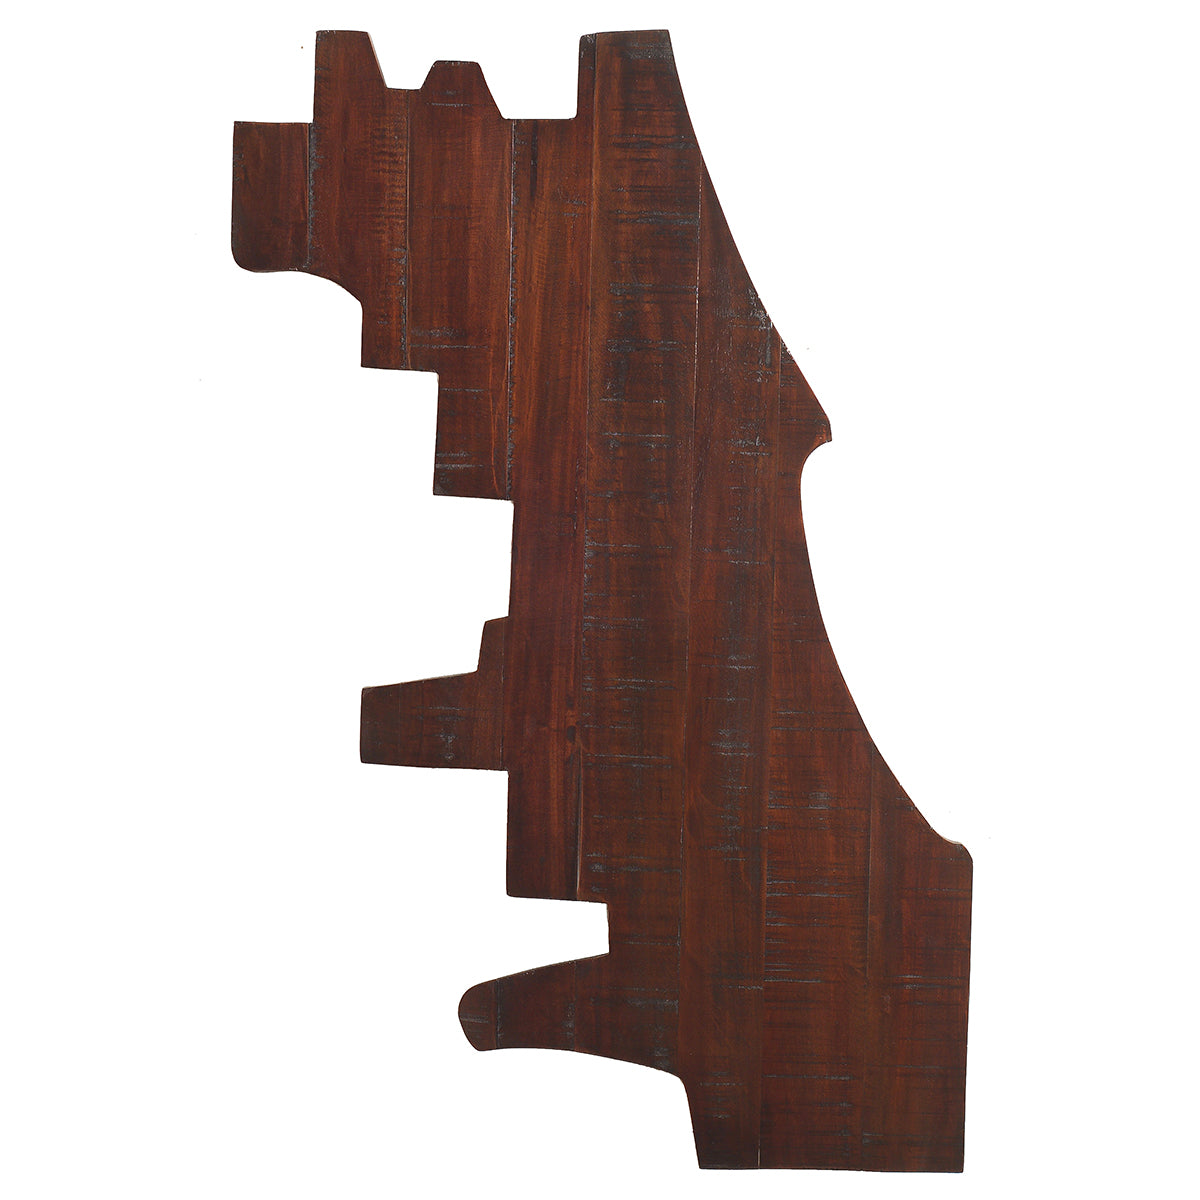 Chicago Map Wall Art Rustic Tobacco Wrightwood Furniture